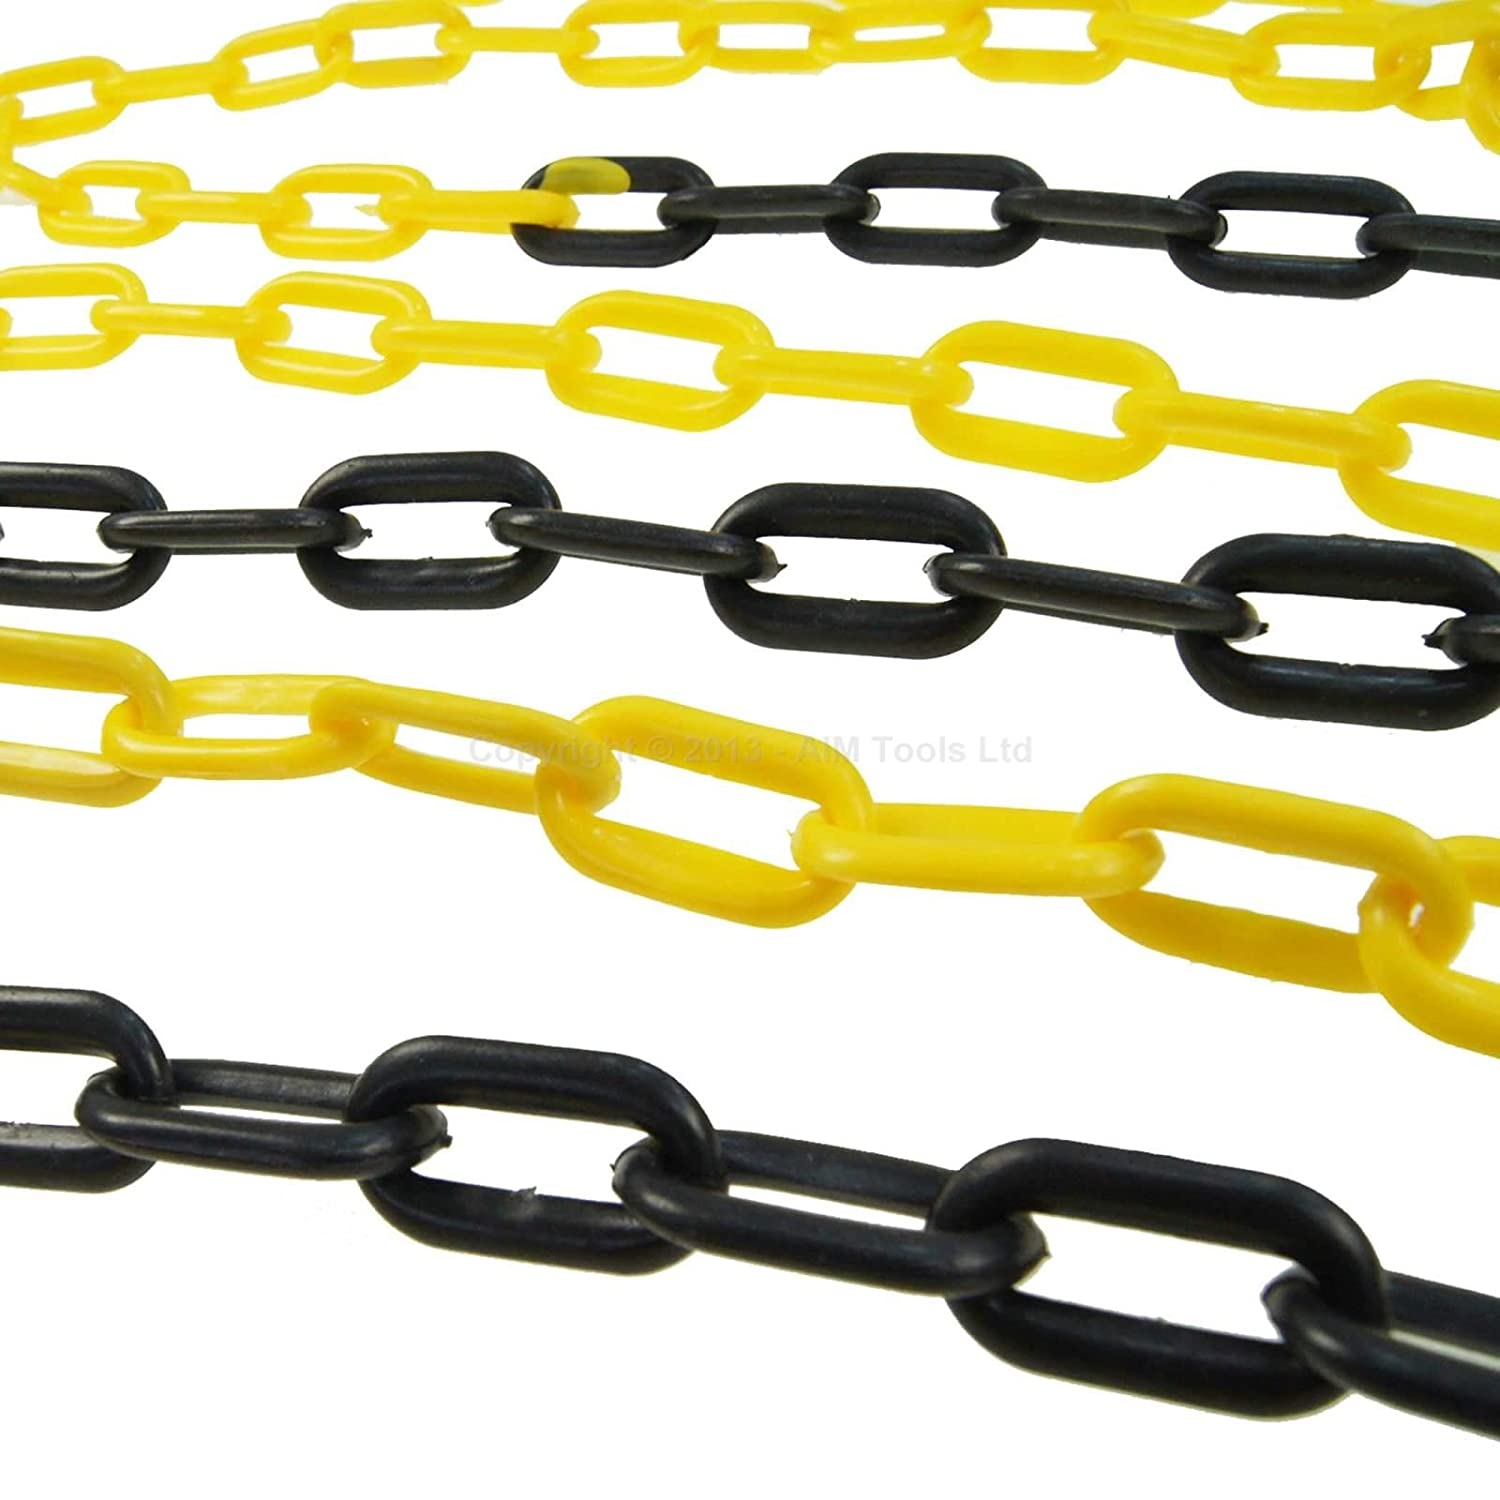 Black and yellow barrier Plastic Chain 6mm 6meters KATSU Tools